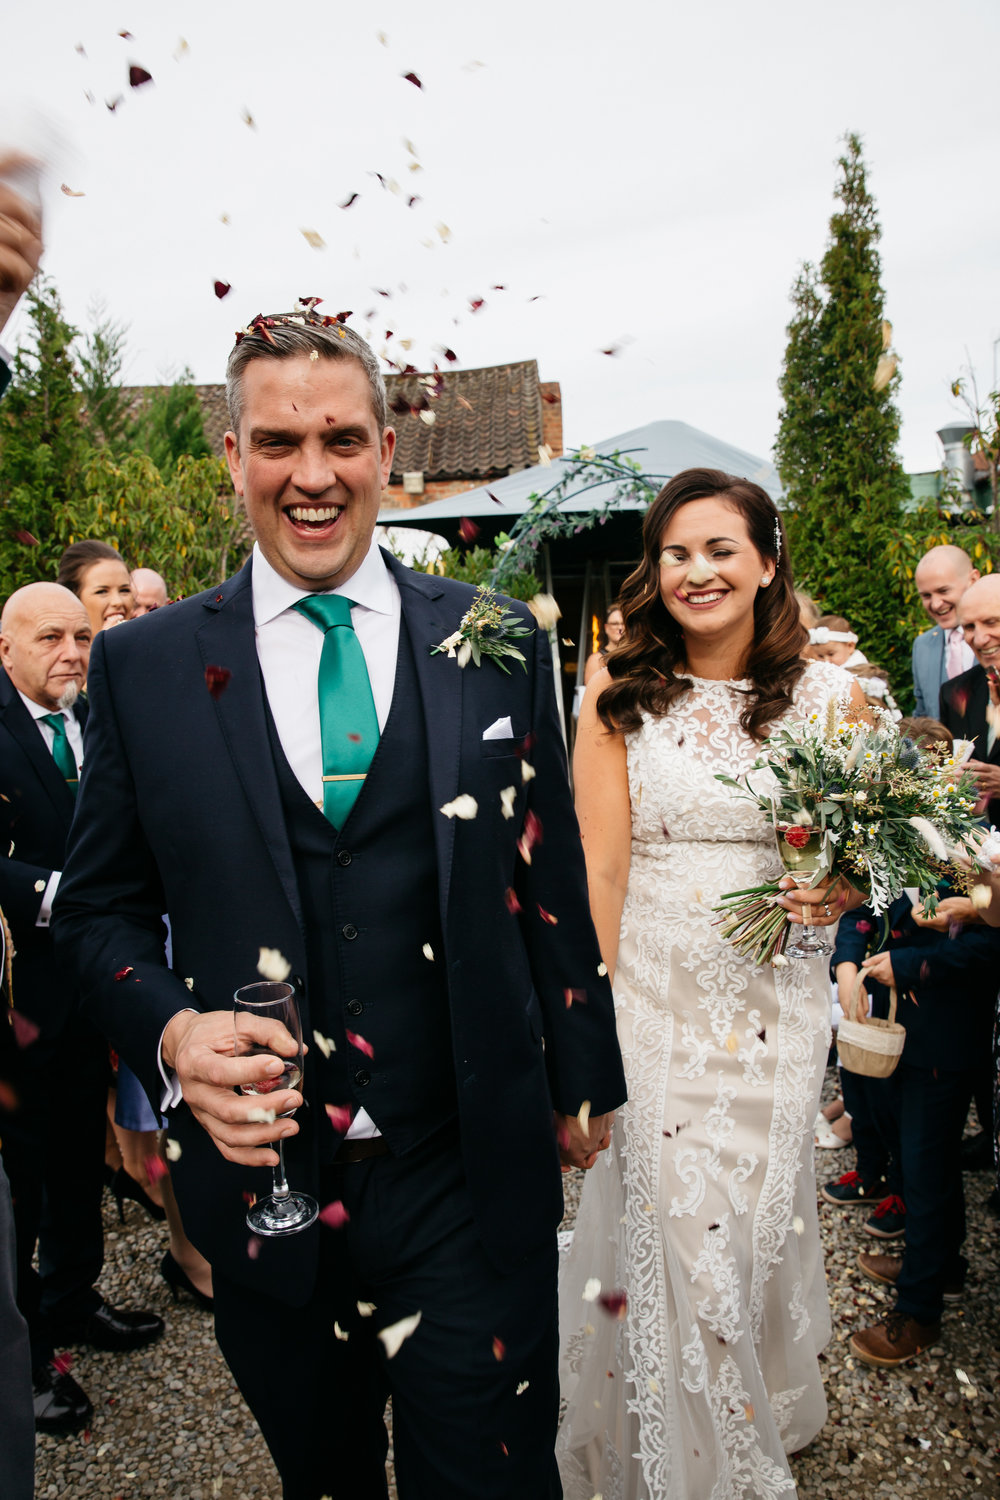 Confetti shot Samantha & Steve | Harrogate Wedding Photographer